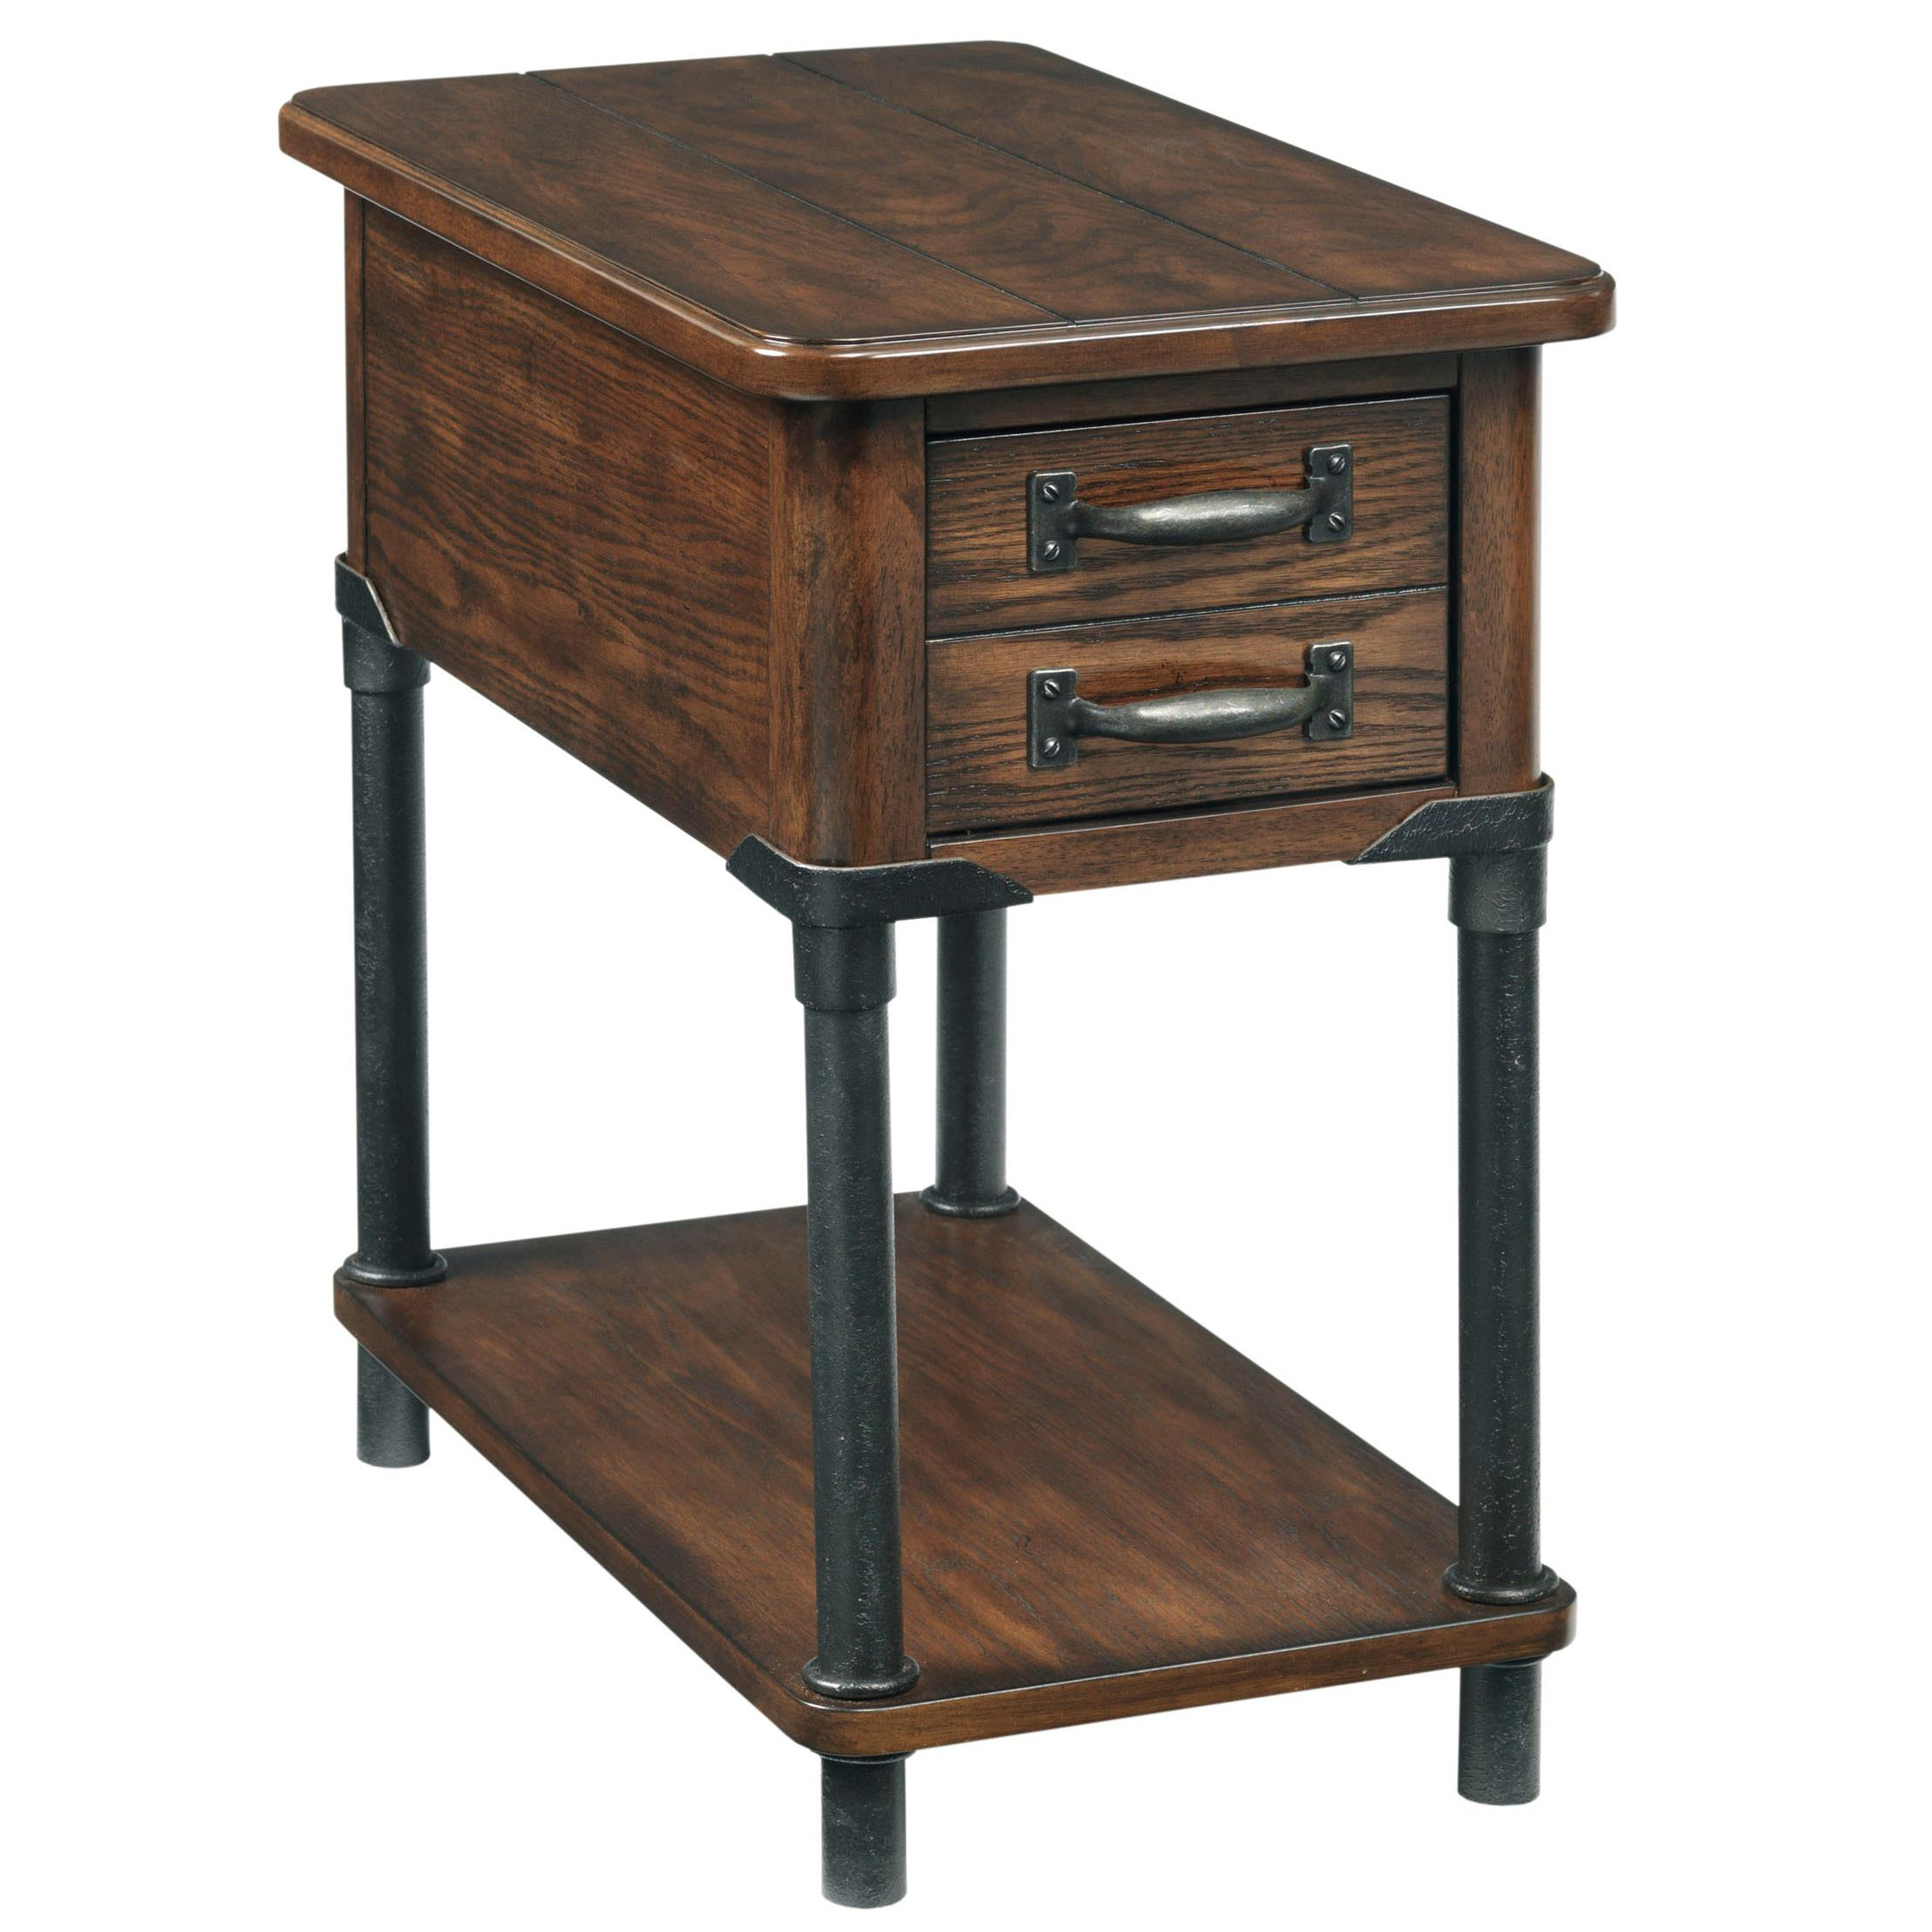 brushed nickel end table probably terrific cool broyhill furniture saluda accent with shelf wayside products color drawer item number small glass top hobby lobby promo code old